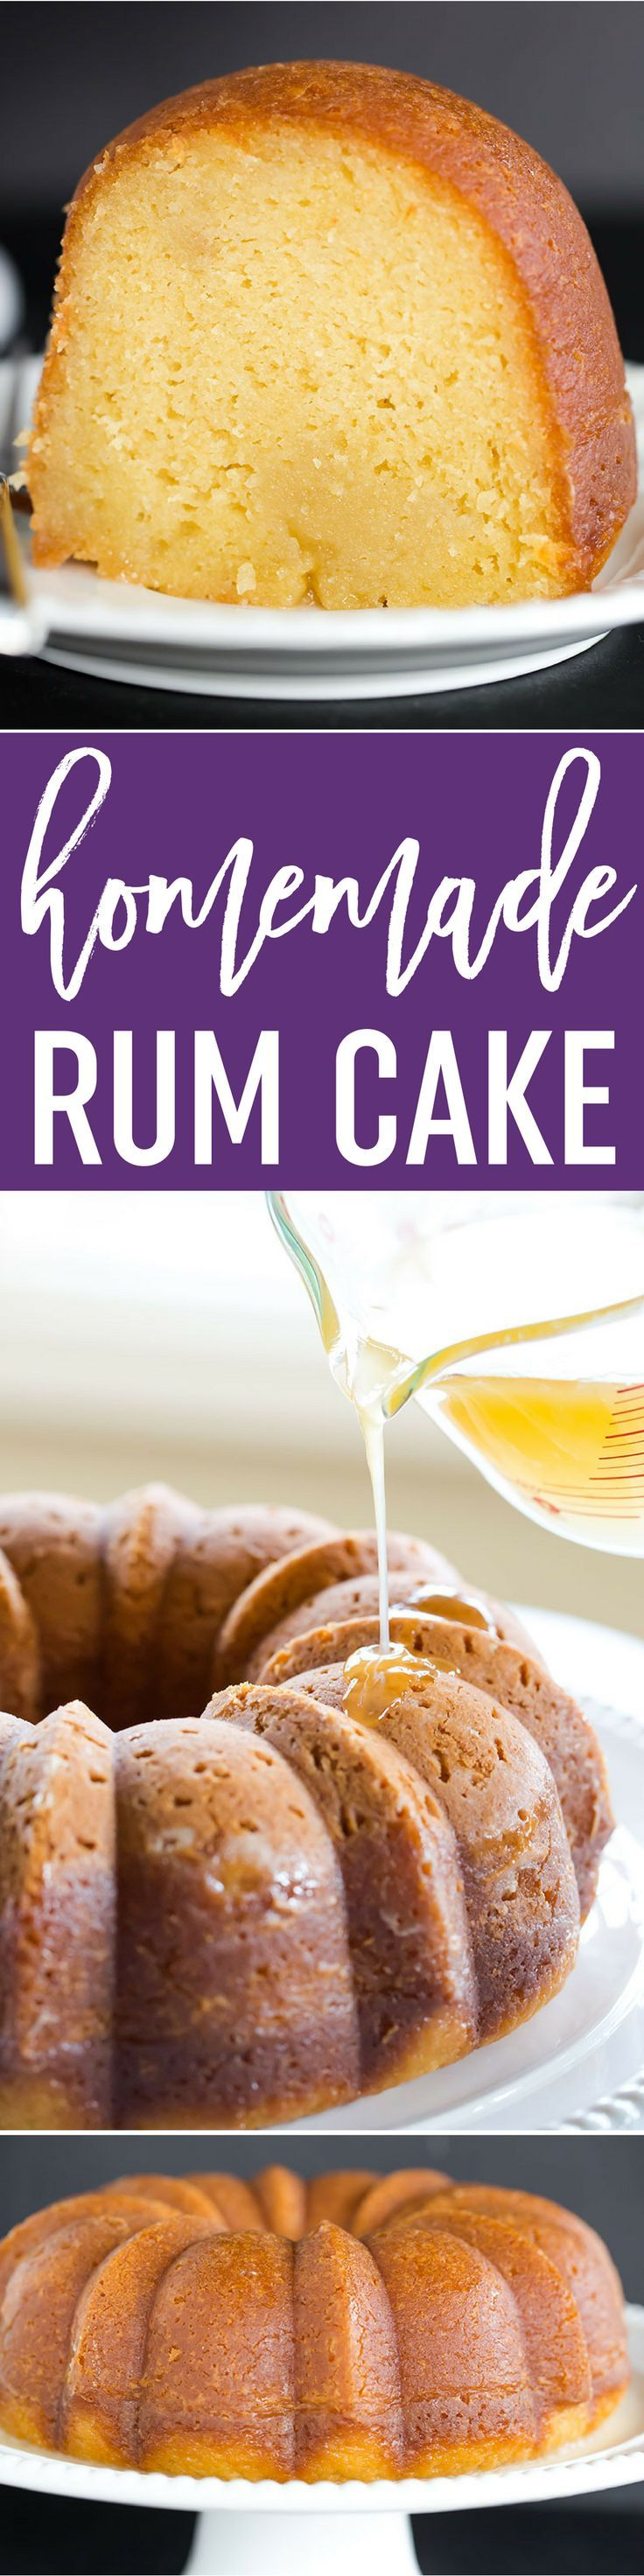 This rum cake is made completely from scratch, has the most tender, moist crumb, and is drenched in rum flavor without being overpowering. via @browneyedbaker (Dessert Recipes From Scratch)